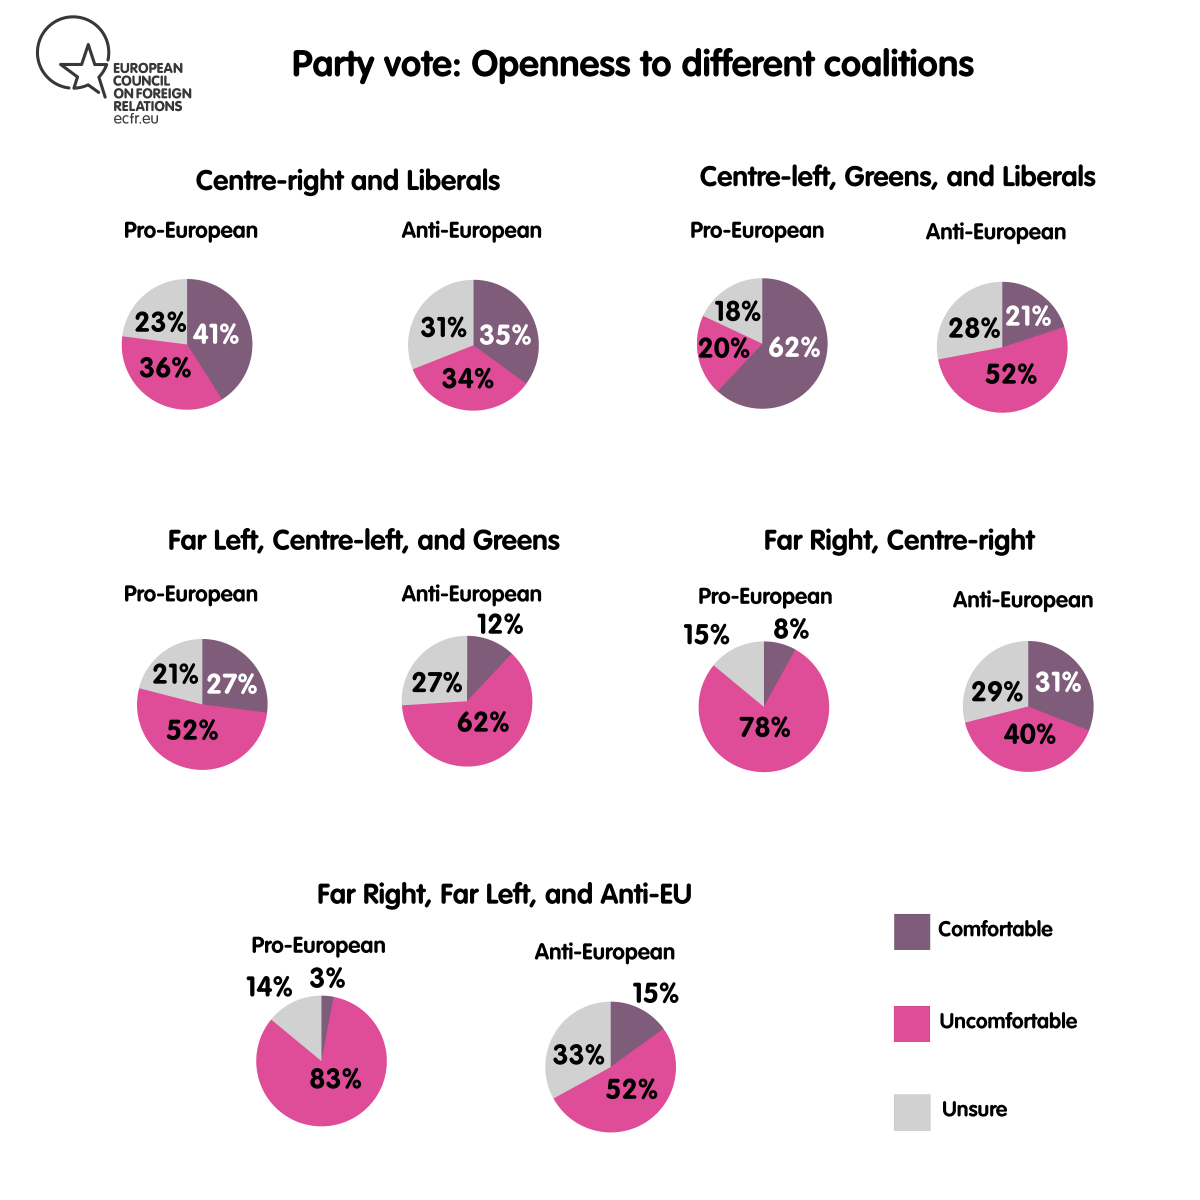 Party vote: openness to different coalitions